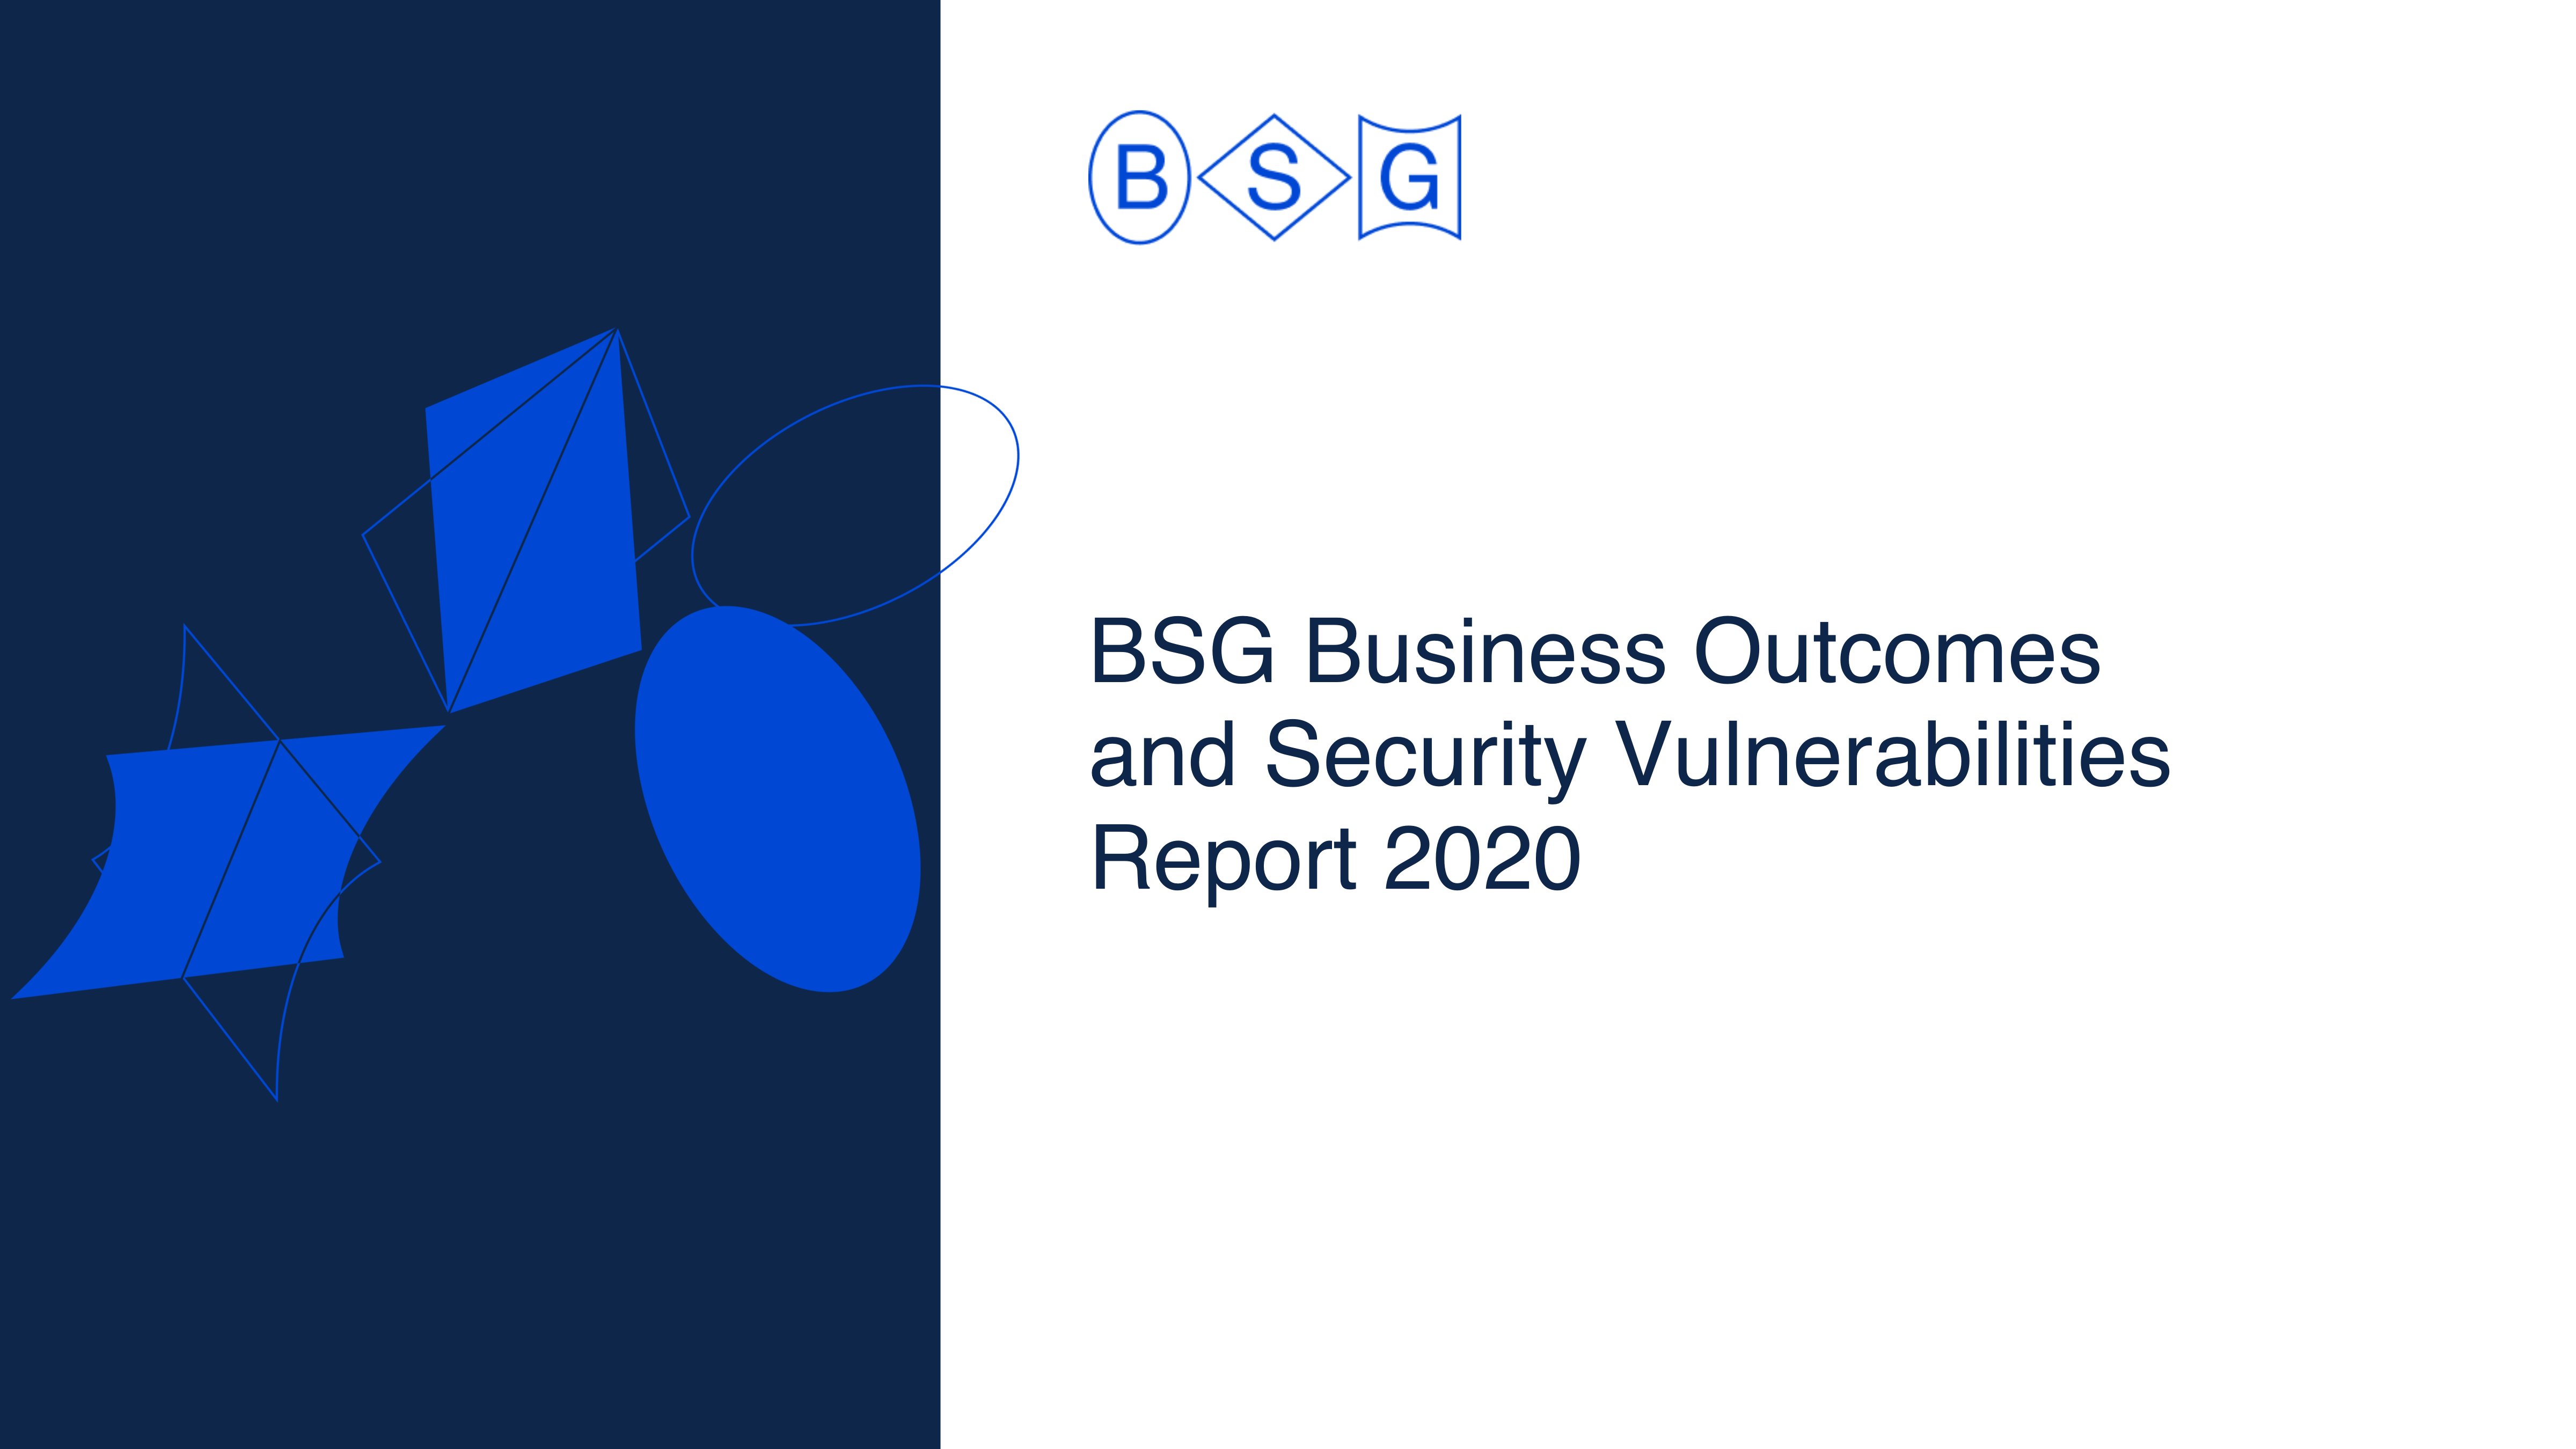 BSG Business Outcomes and Security Vulnerabilities Report